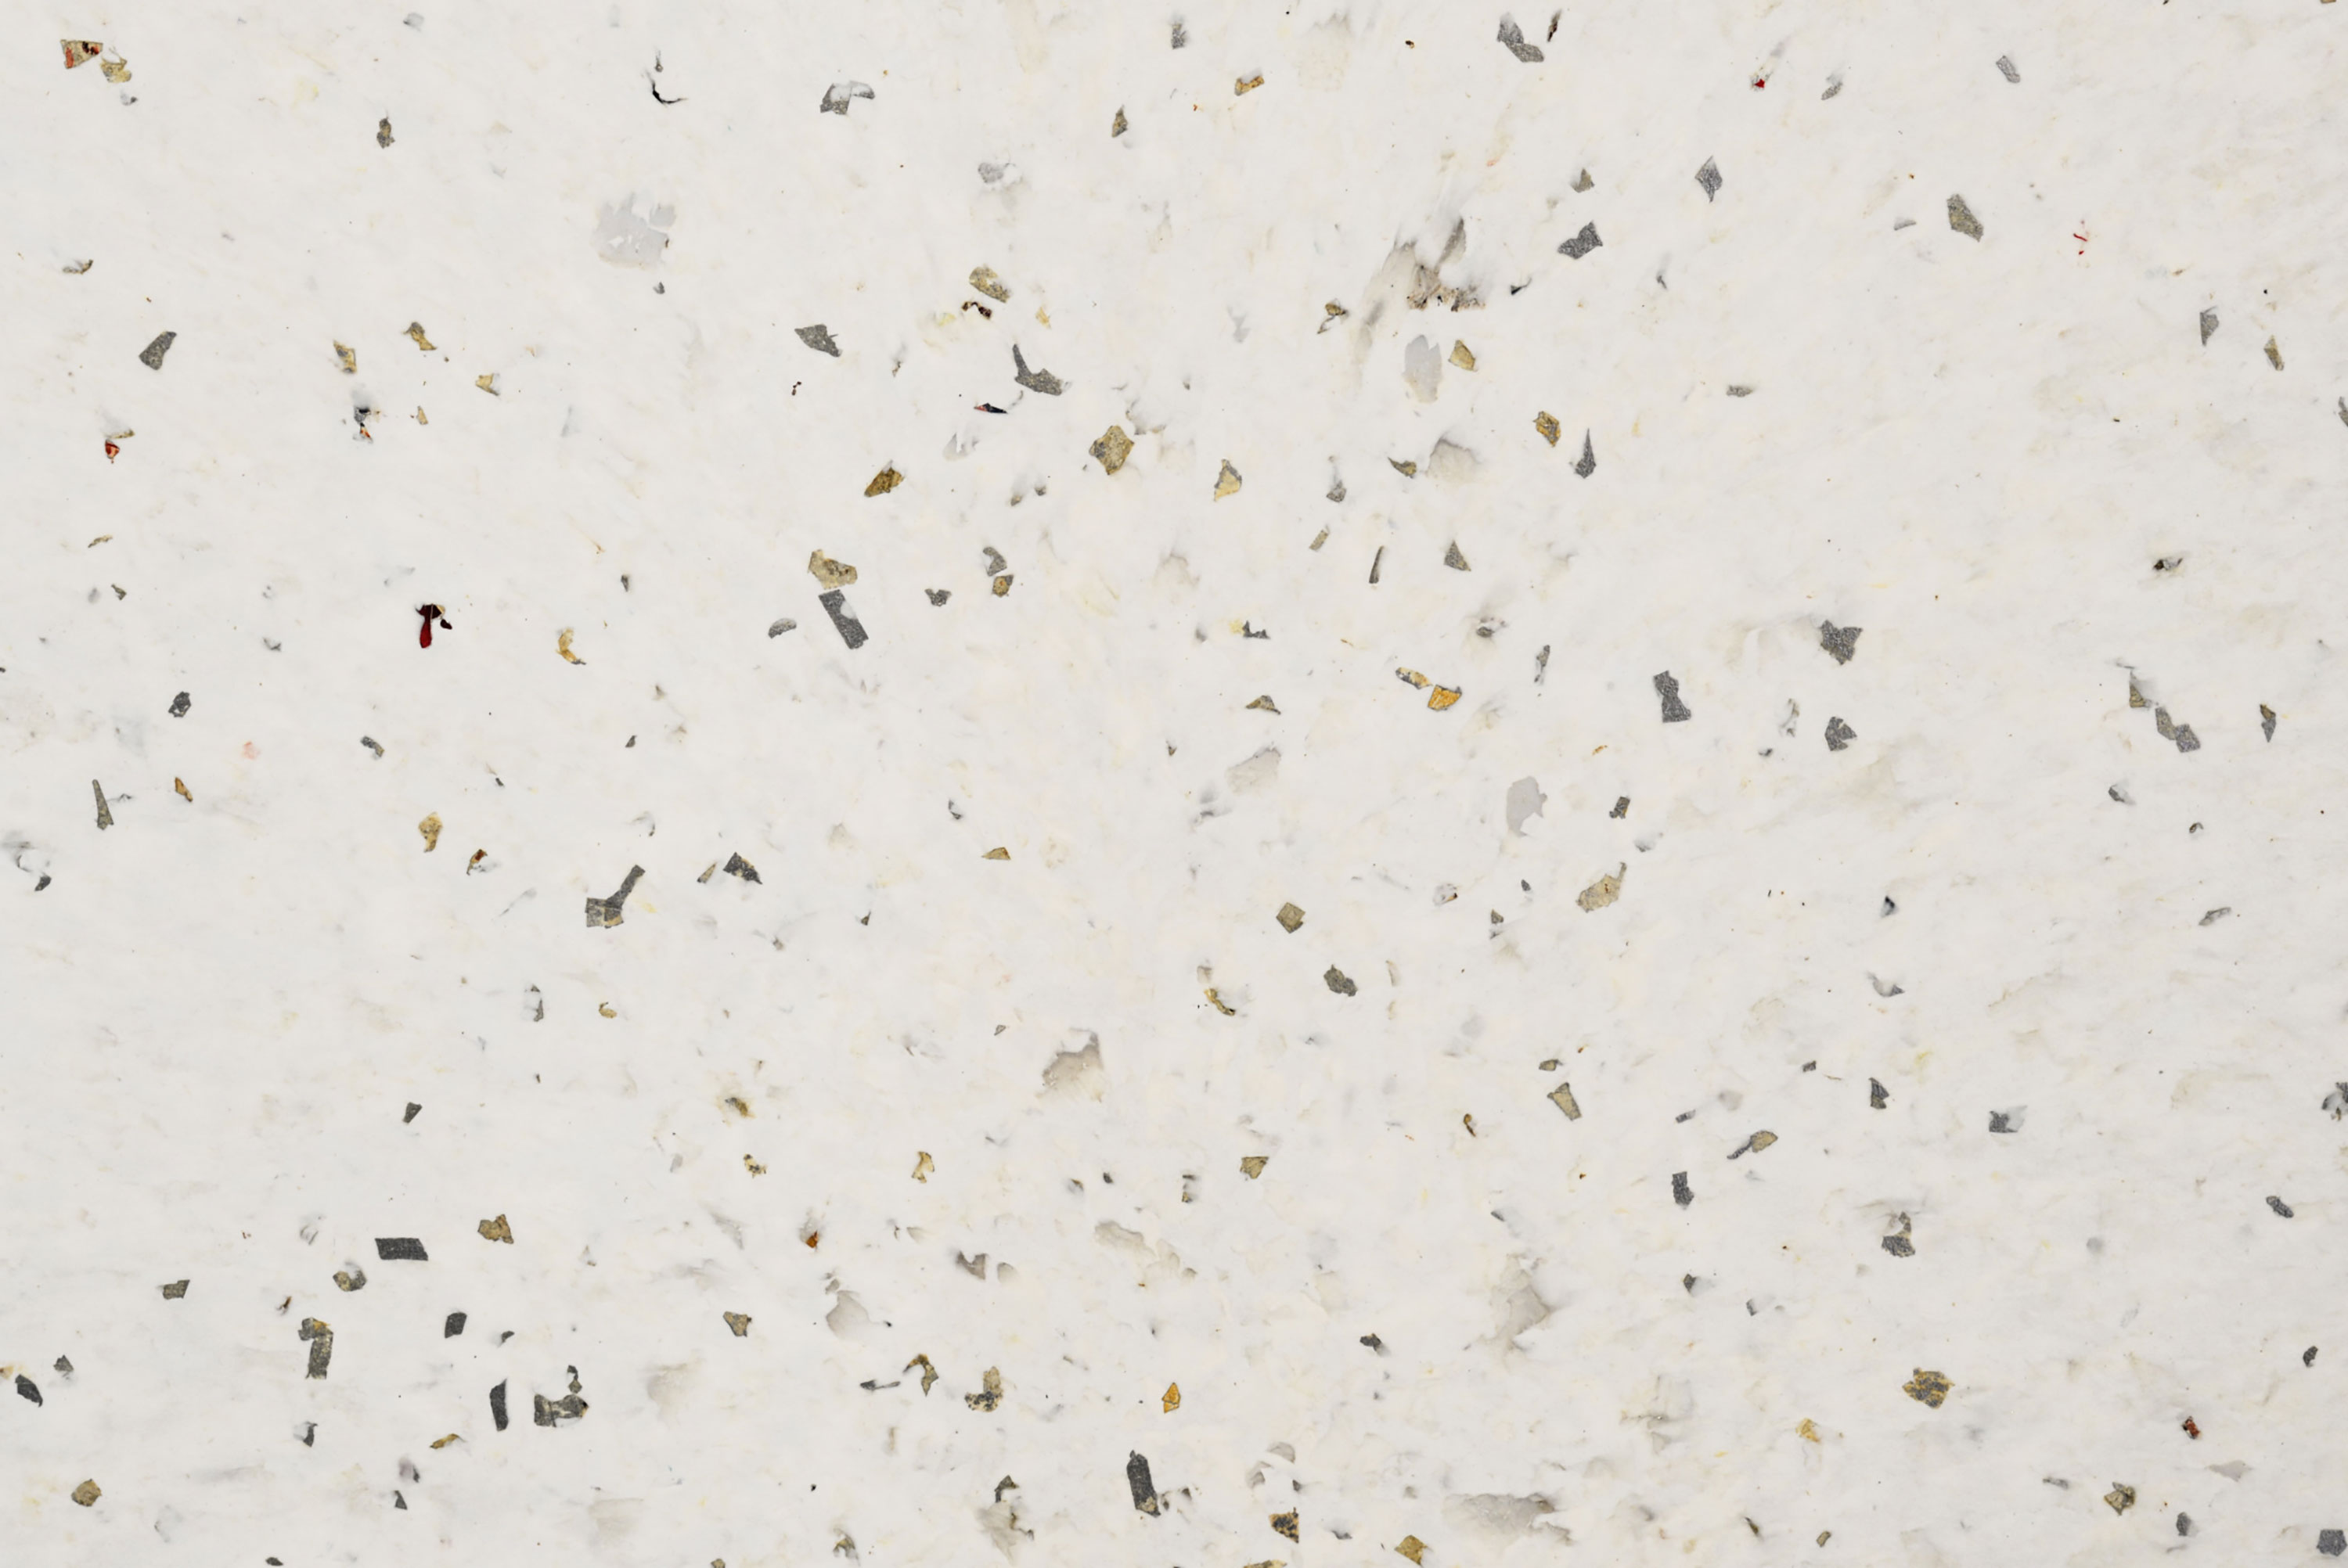 "Alba - Alba's beauty and versatility make it a firm favourite. With its white, marble-like surface and hints of gold and silver, this is an elegant-looking material that suits a wide variety of applications. However Alba is not just a plastic that is easy on the eye: closer inspection of Alba's surface reveals fragments of yoghurt labels or a glint of silver foil that draw us in and reveals the plastic's unique recycling story, with each panel being the equivalent of 1000-5000 yogurt pots.<p class=""p1""><span class=""s1"">Alba's hard, dense and rigid as well as being 100% waterproof. With modern scratch resistance that can in turn be refinished, Alba has plenty of life in it. In addition Alba can be heat formed into all types of bespoke shapes with a choice of matt or gloss finishes, as well as the versatility of being machined, drilled, cut (router, CNC), water cut and fixed using adhesives and screws, making it perfect for any type of project.</span></p> 